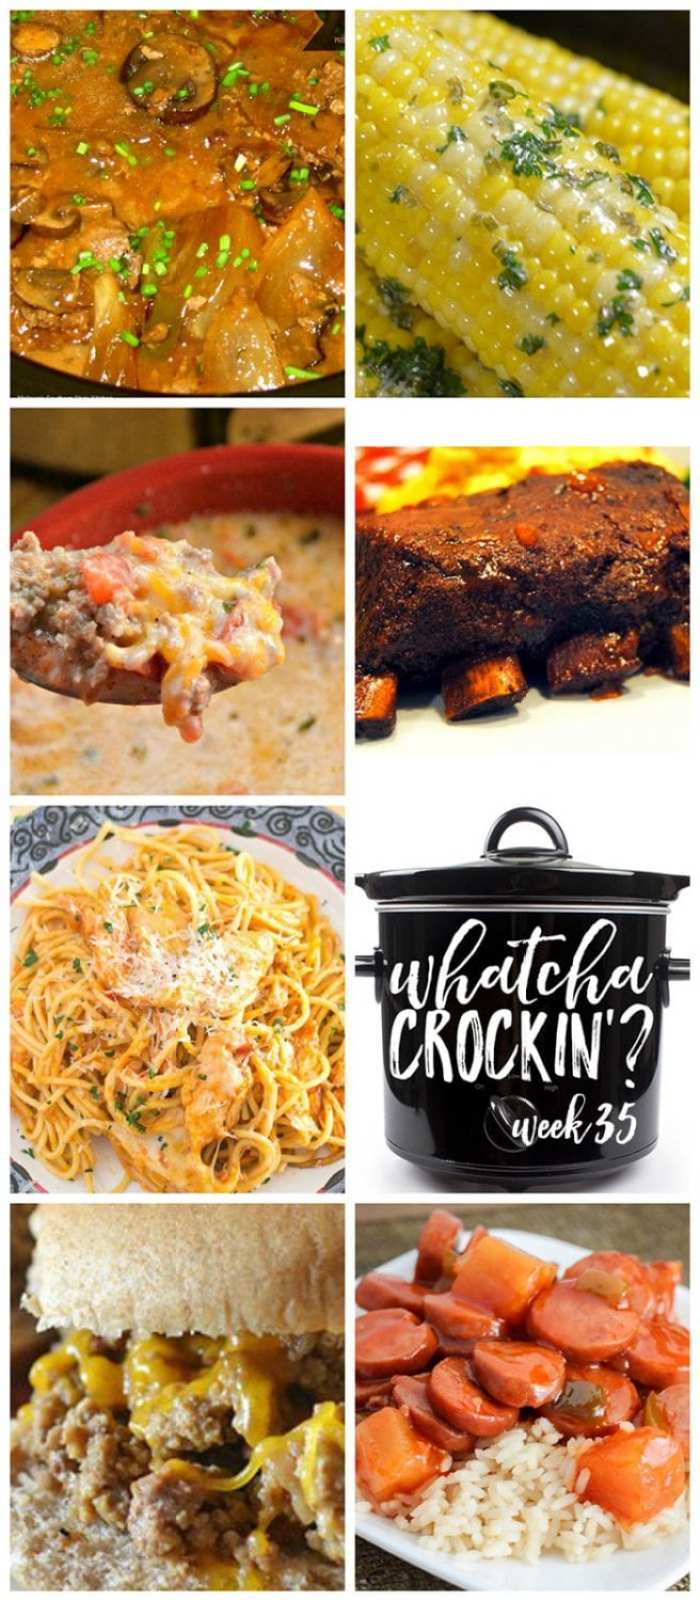 This week's Whatcha Crockin' crock pot recipes include Slow Cooker Baby Back Ribs, Crock Pot Cheesy Chicken Spaghetti, Crock Pot Corn on the Cob, Crock Pot Sweet and Sour Sausage, Slow Cooked Cube Steak with Peppers, Onions and Mushrooms, Crock Pot Low-Carb Taco Soup, Crock Pot Unsloppy Joes, and much more!